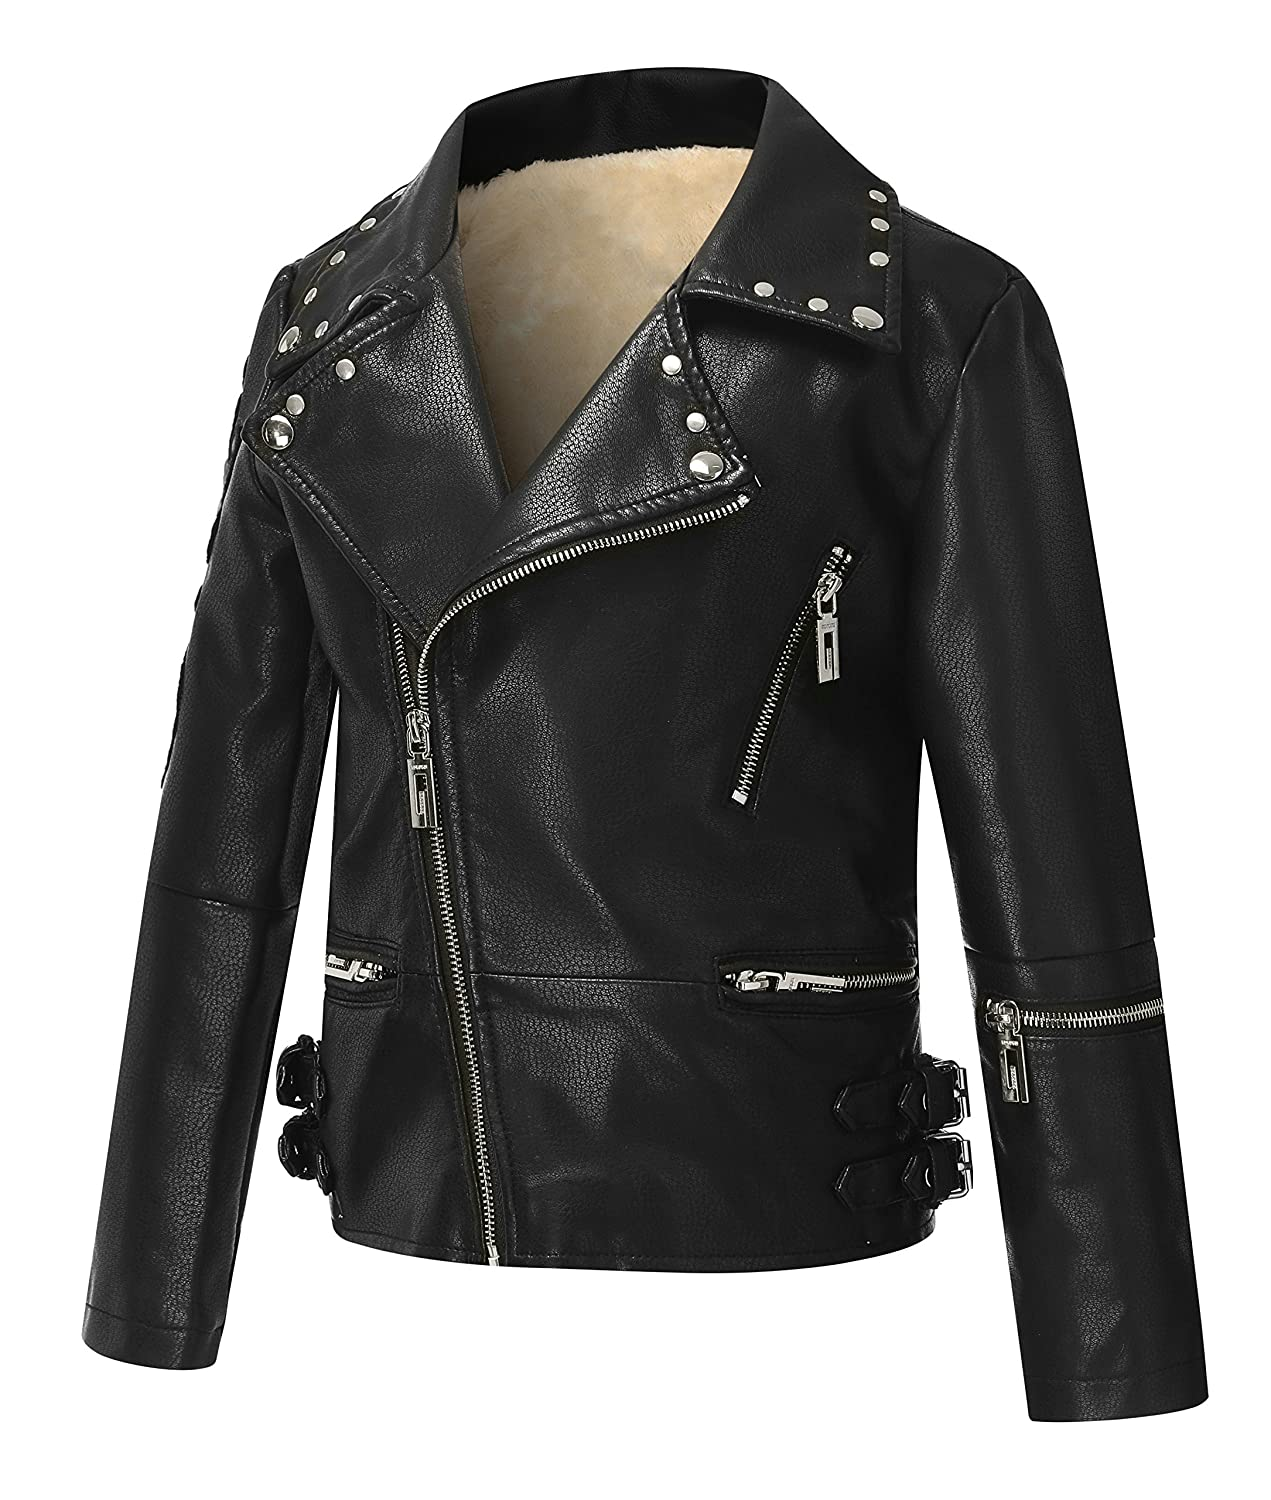 732b3f12 Amazon.com: The Twins Dream Girls Leather Jacket Kids Leather Jackets Boys  Motorcycle Jacket Girls Coat: Clothing